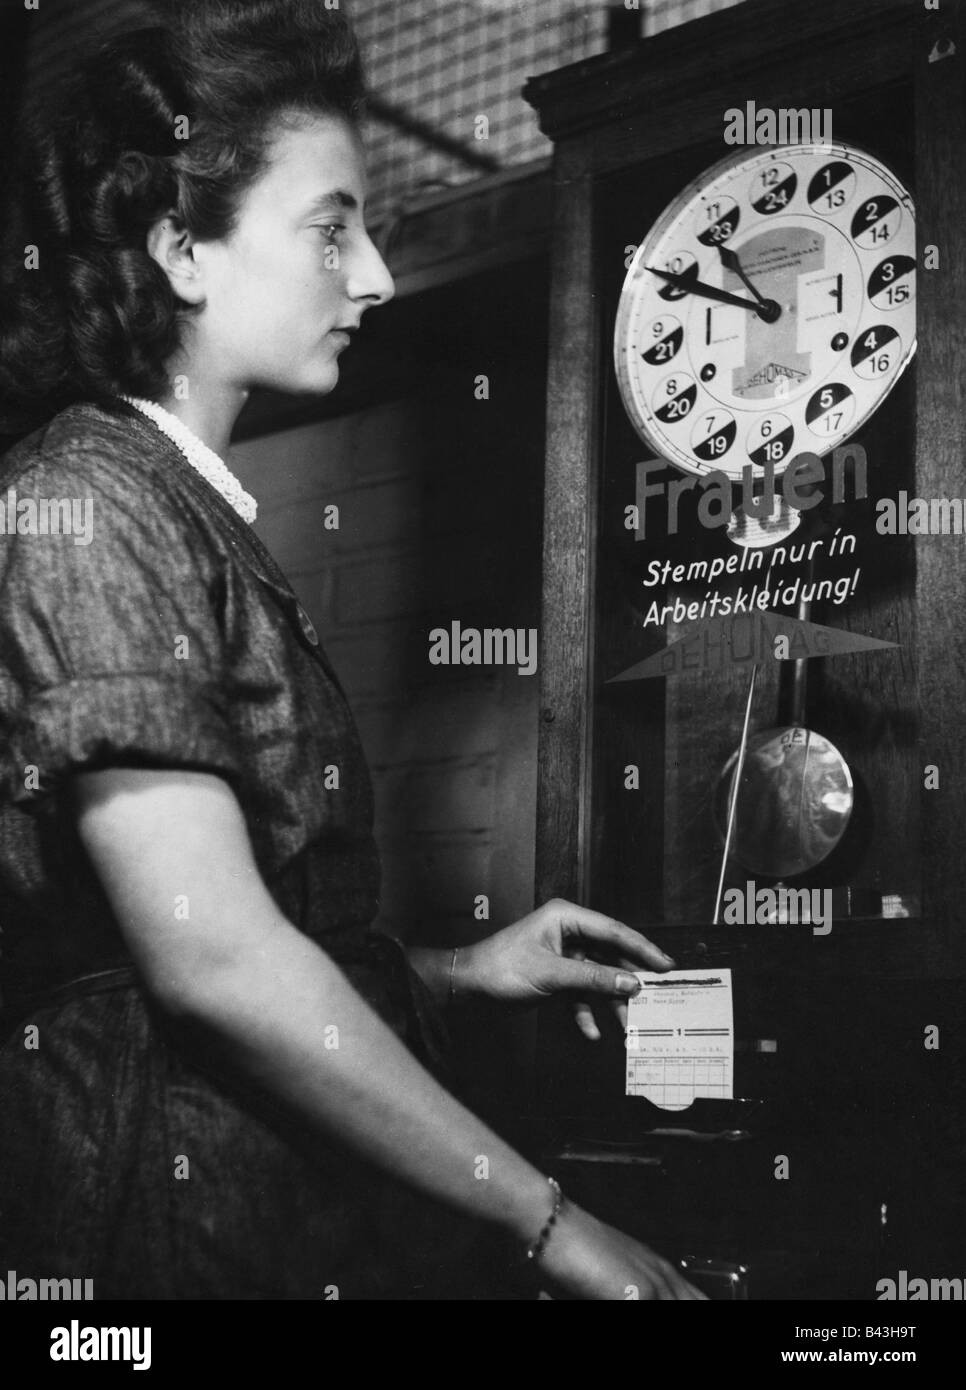 events, Second World War / WWII, Germany, wartime economy, student in armaments industry, clocking in, Bonn 1941, - Stock Image